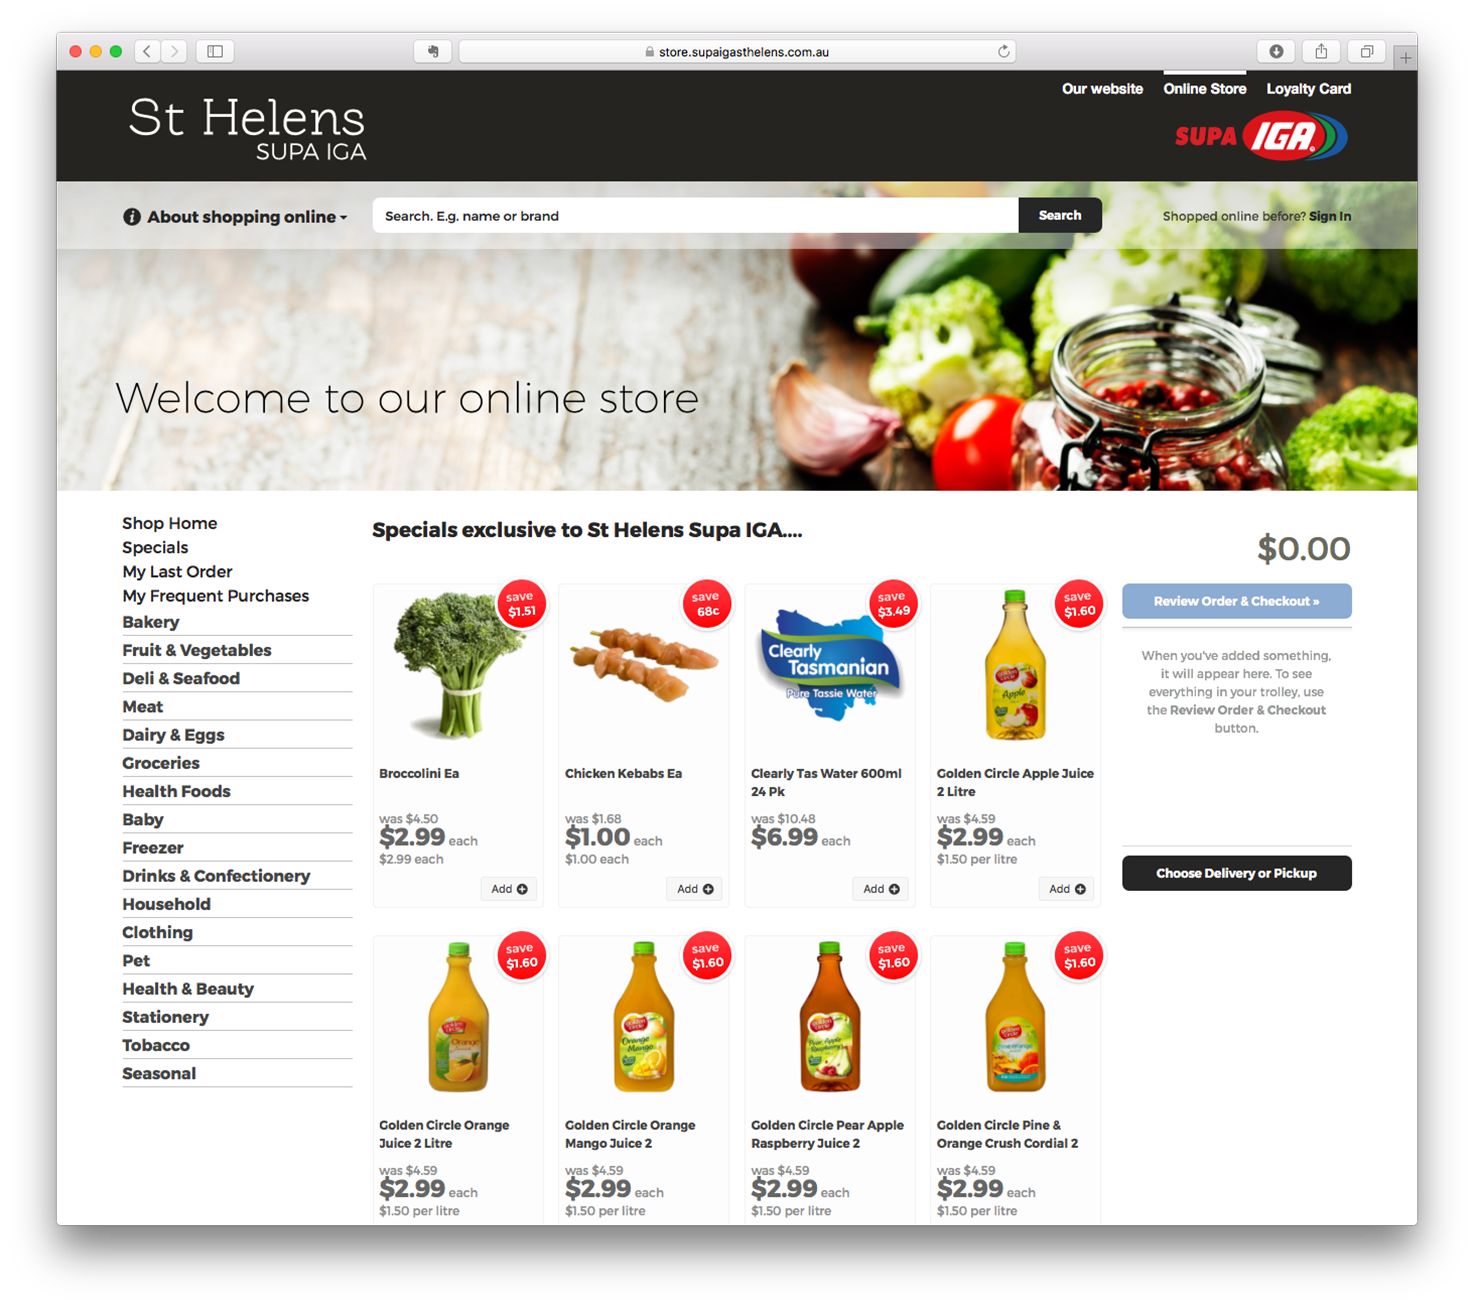 showcase-homepageslider-sthelens@2x.png